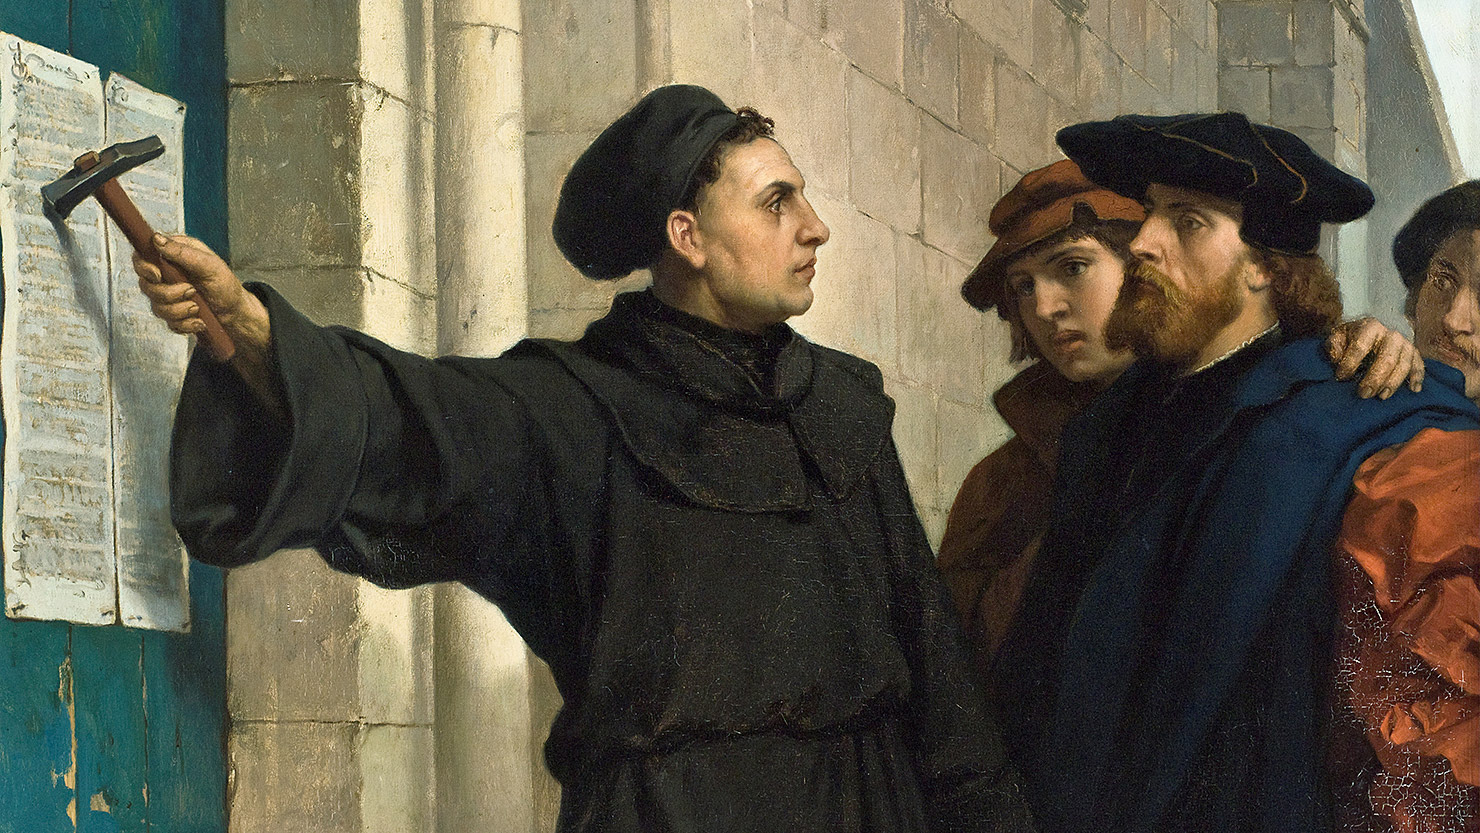 https://i2.wp.com/upload.wikimedia.org/wikipedia/commons/2/20/Luther95theses.jpg